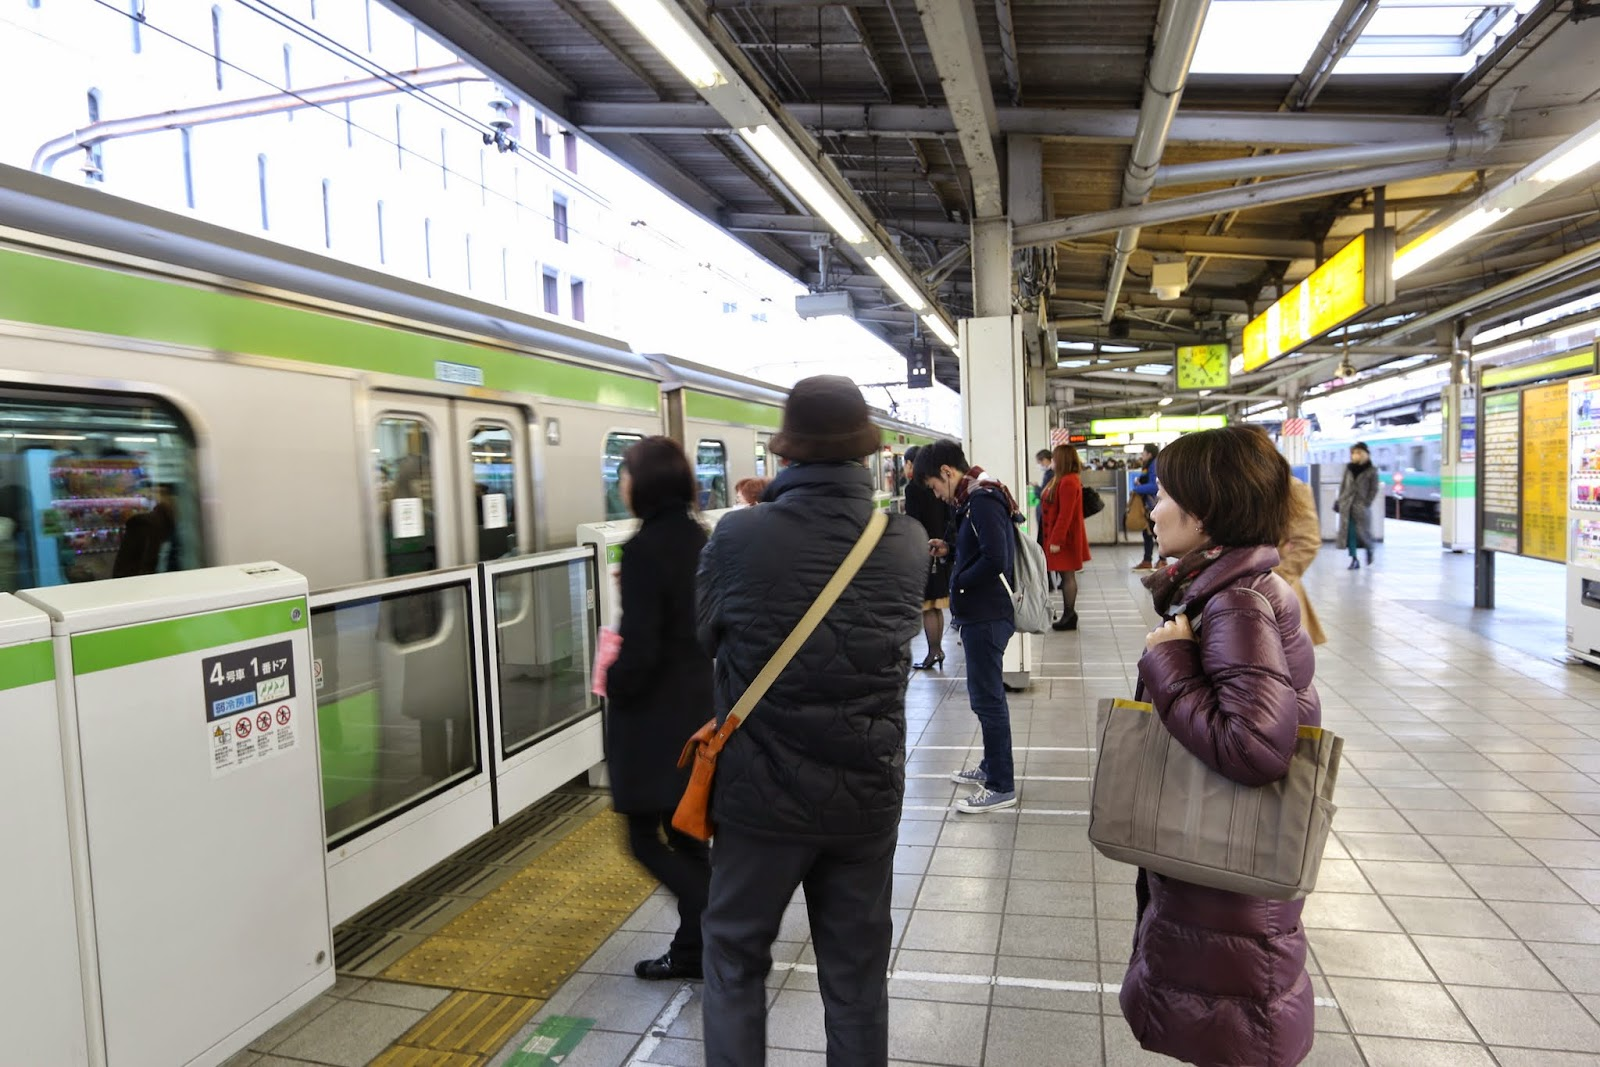 Queuing in a line and turning your mobile into silent mode before getting onto a train or a subway is the basic rules of train etiquette (manners) in Japan